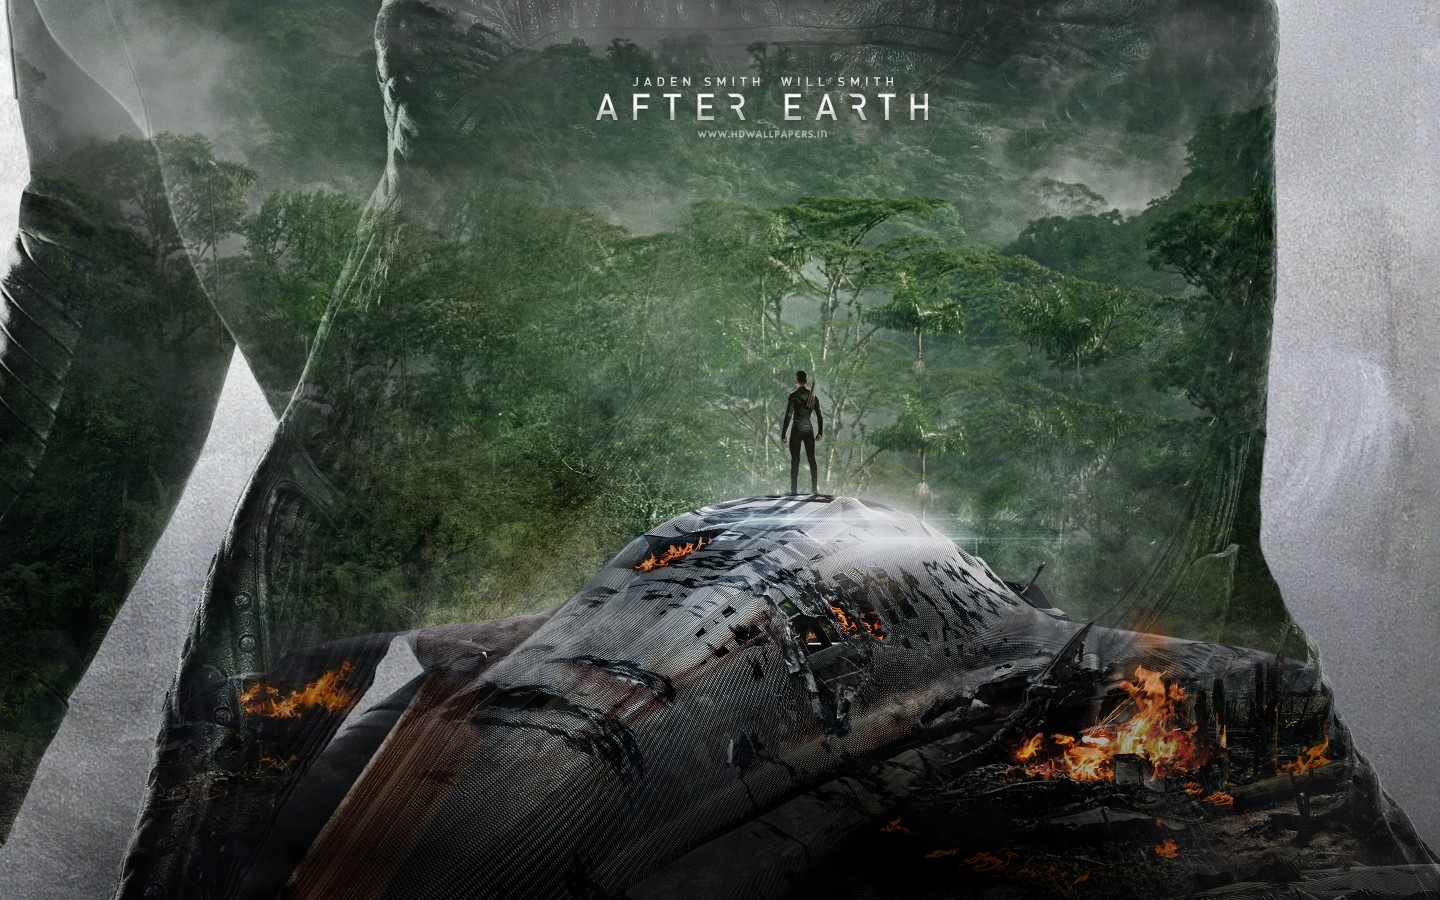 Amazing Cute Love Birds Hd Wallpapers After Earth Movie 2013 Wallpapers Hd Wallpapers Id 12300